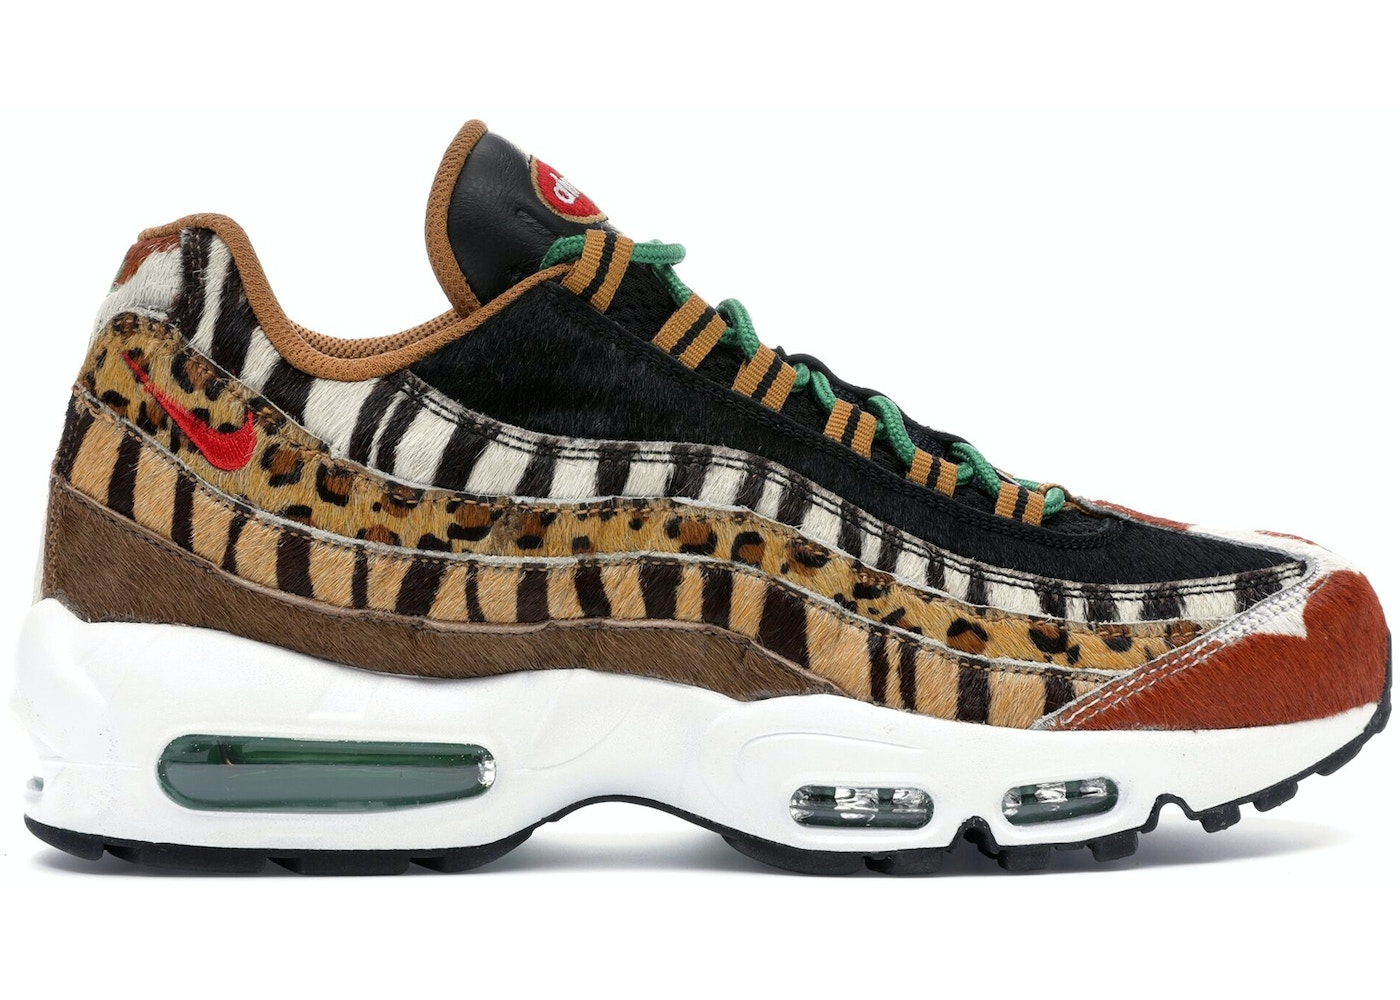 Maestro Alcalde siete y media  Nike Air Max 95 Atmos Animal Pack 2.0 (2018 All Black Box) - AQ0929-200